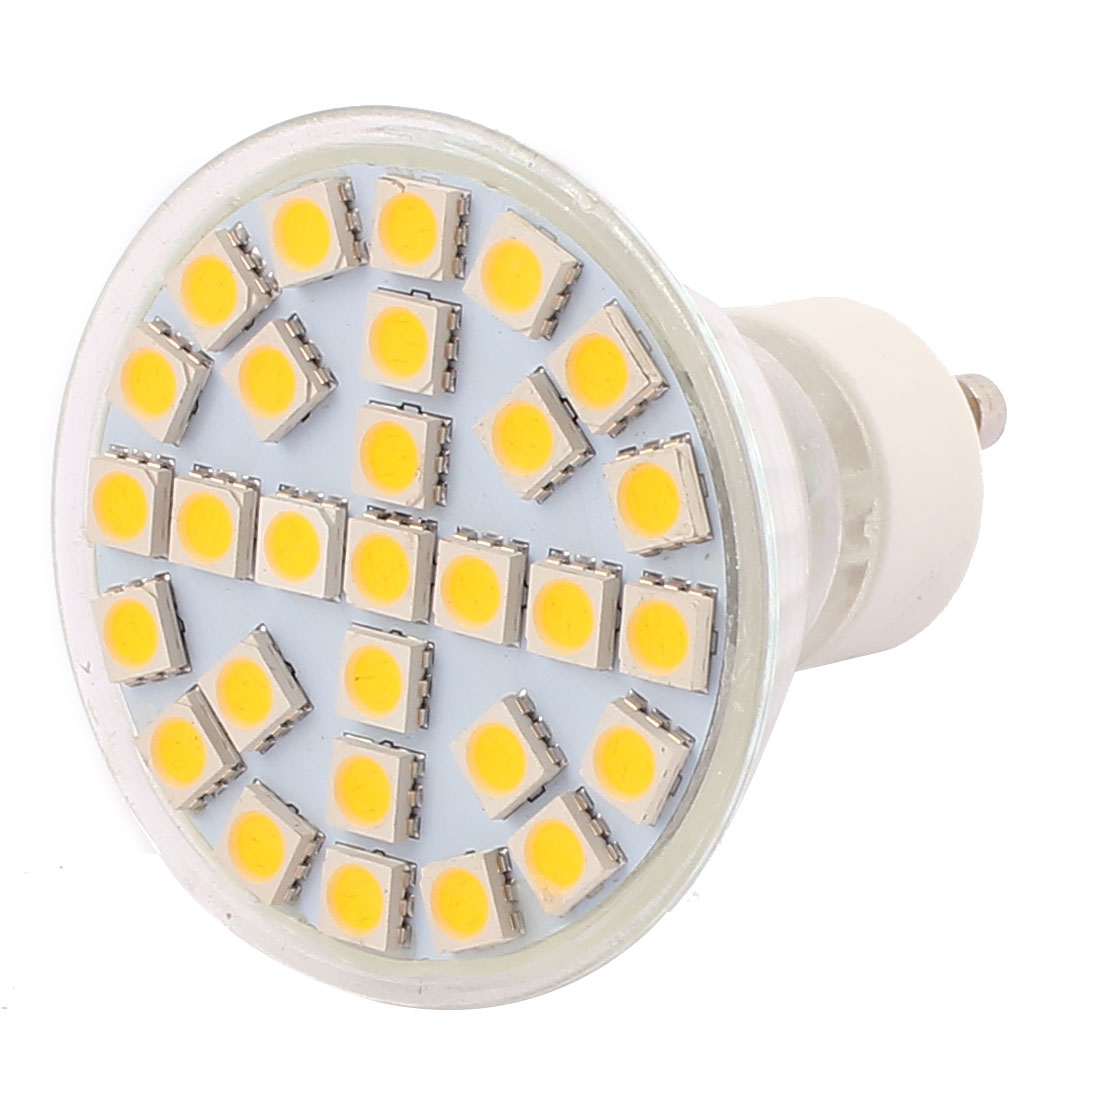 GU10 SMD5050 29LEDs AC 220V 5W Glass Energy Saving LED Lamp Bulb Warm White